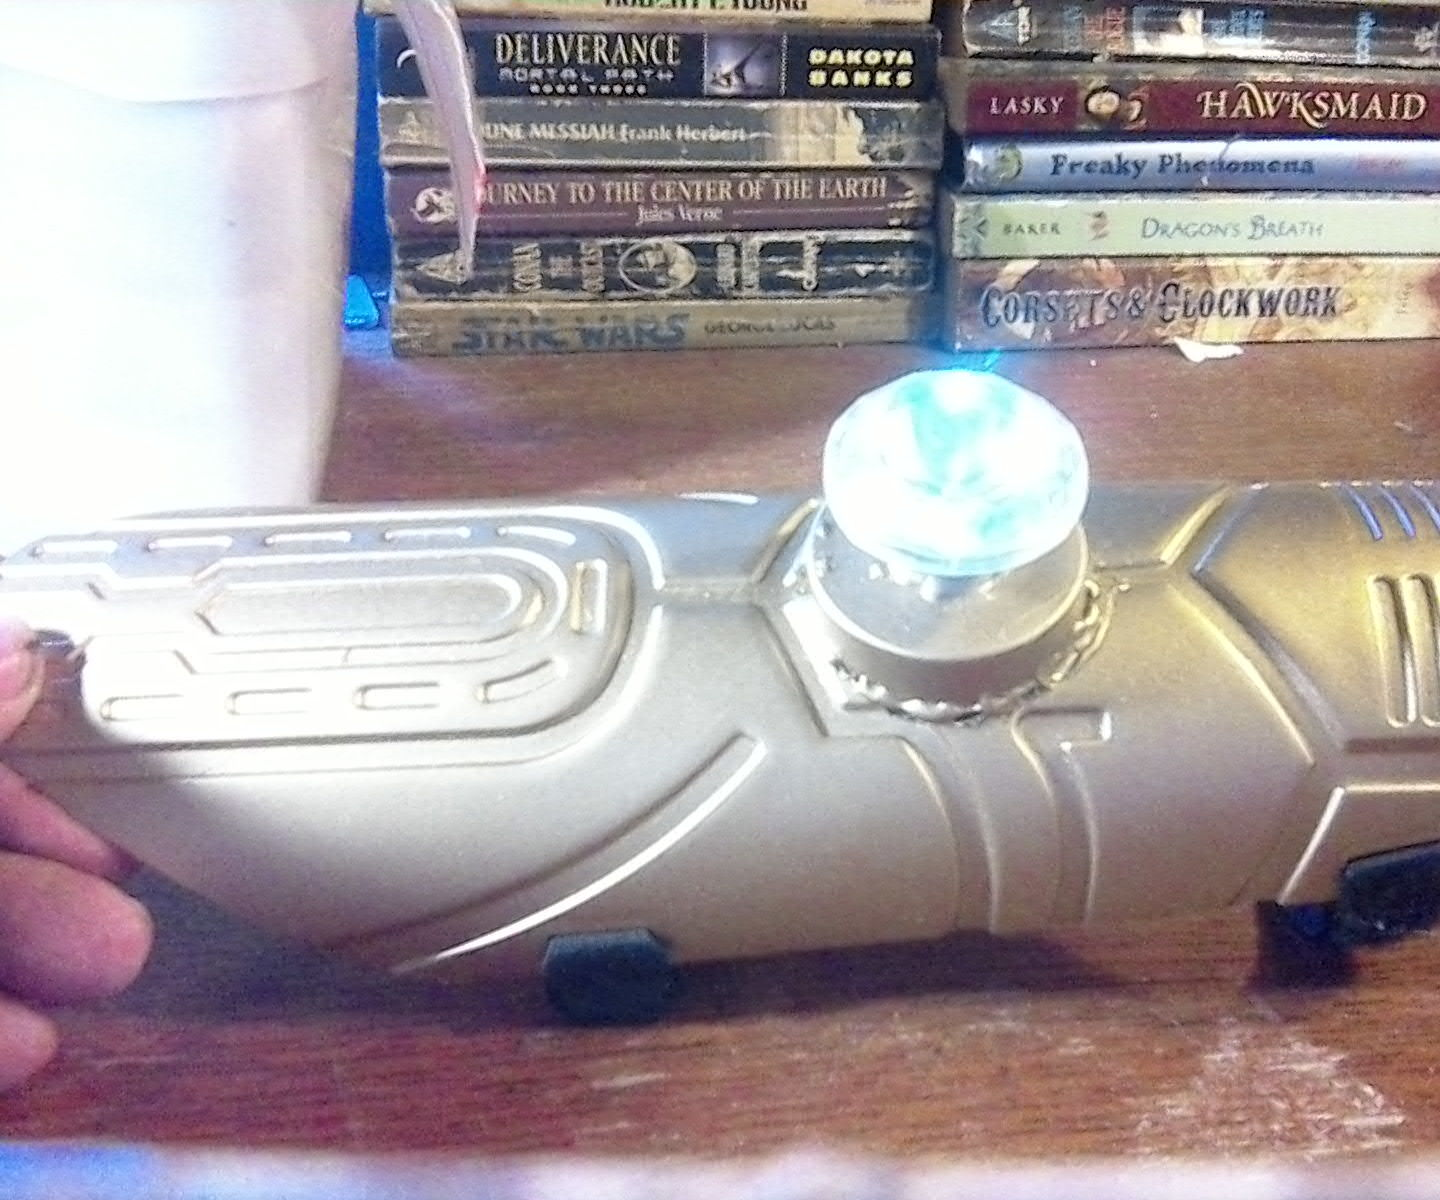 Pair of Steampunk-like Gauntlets From Dollar Tree Halloween Accessories.